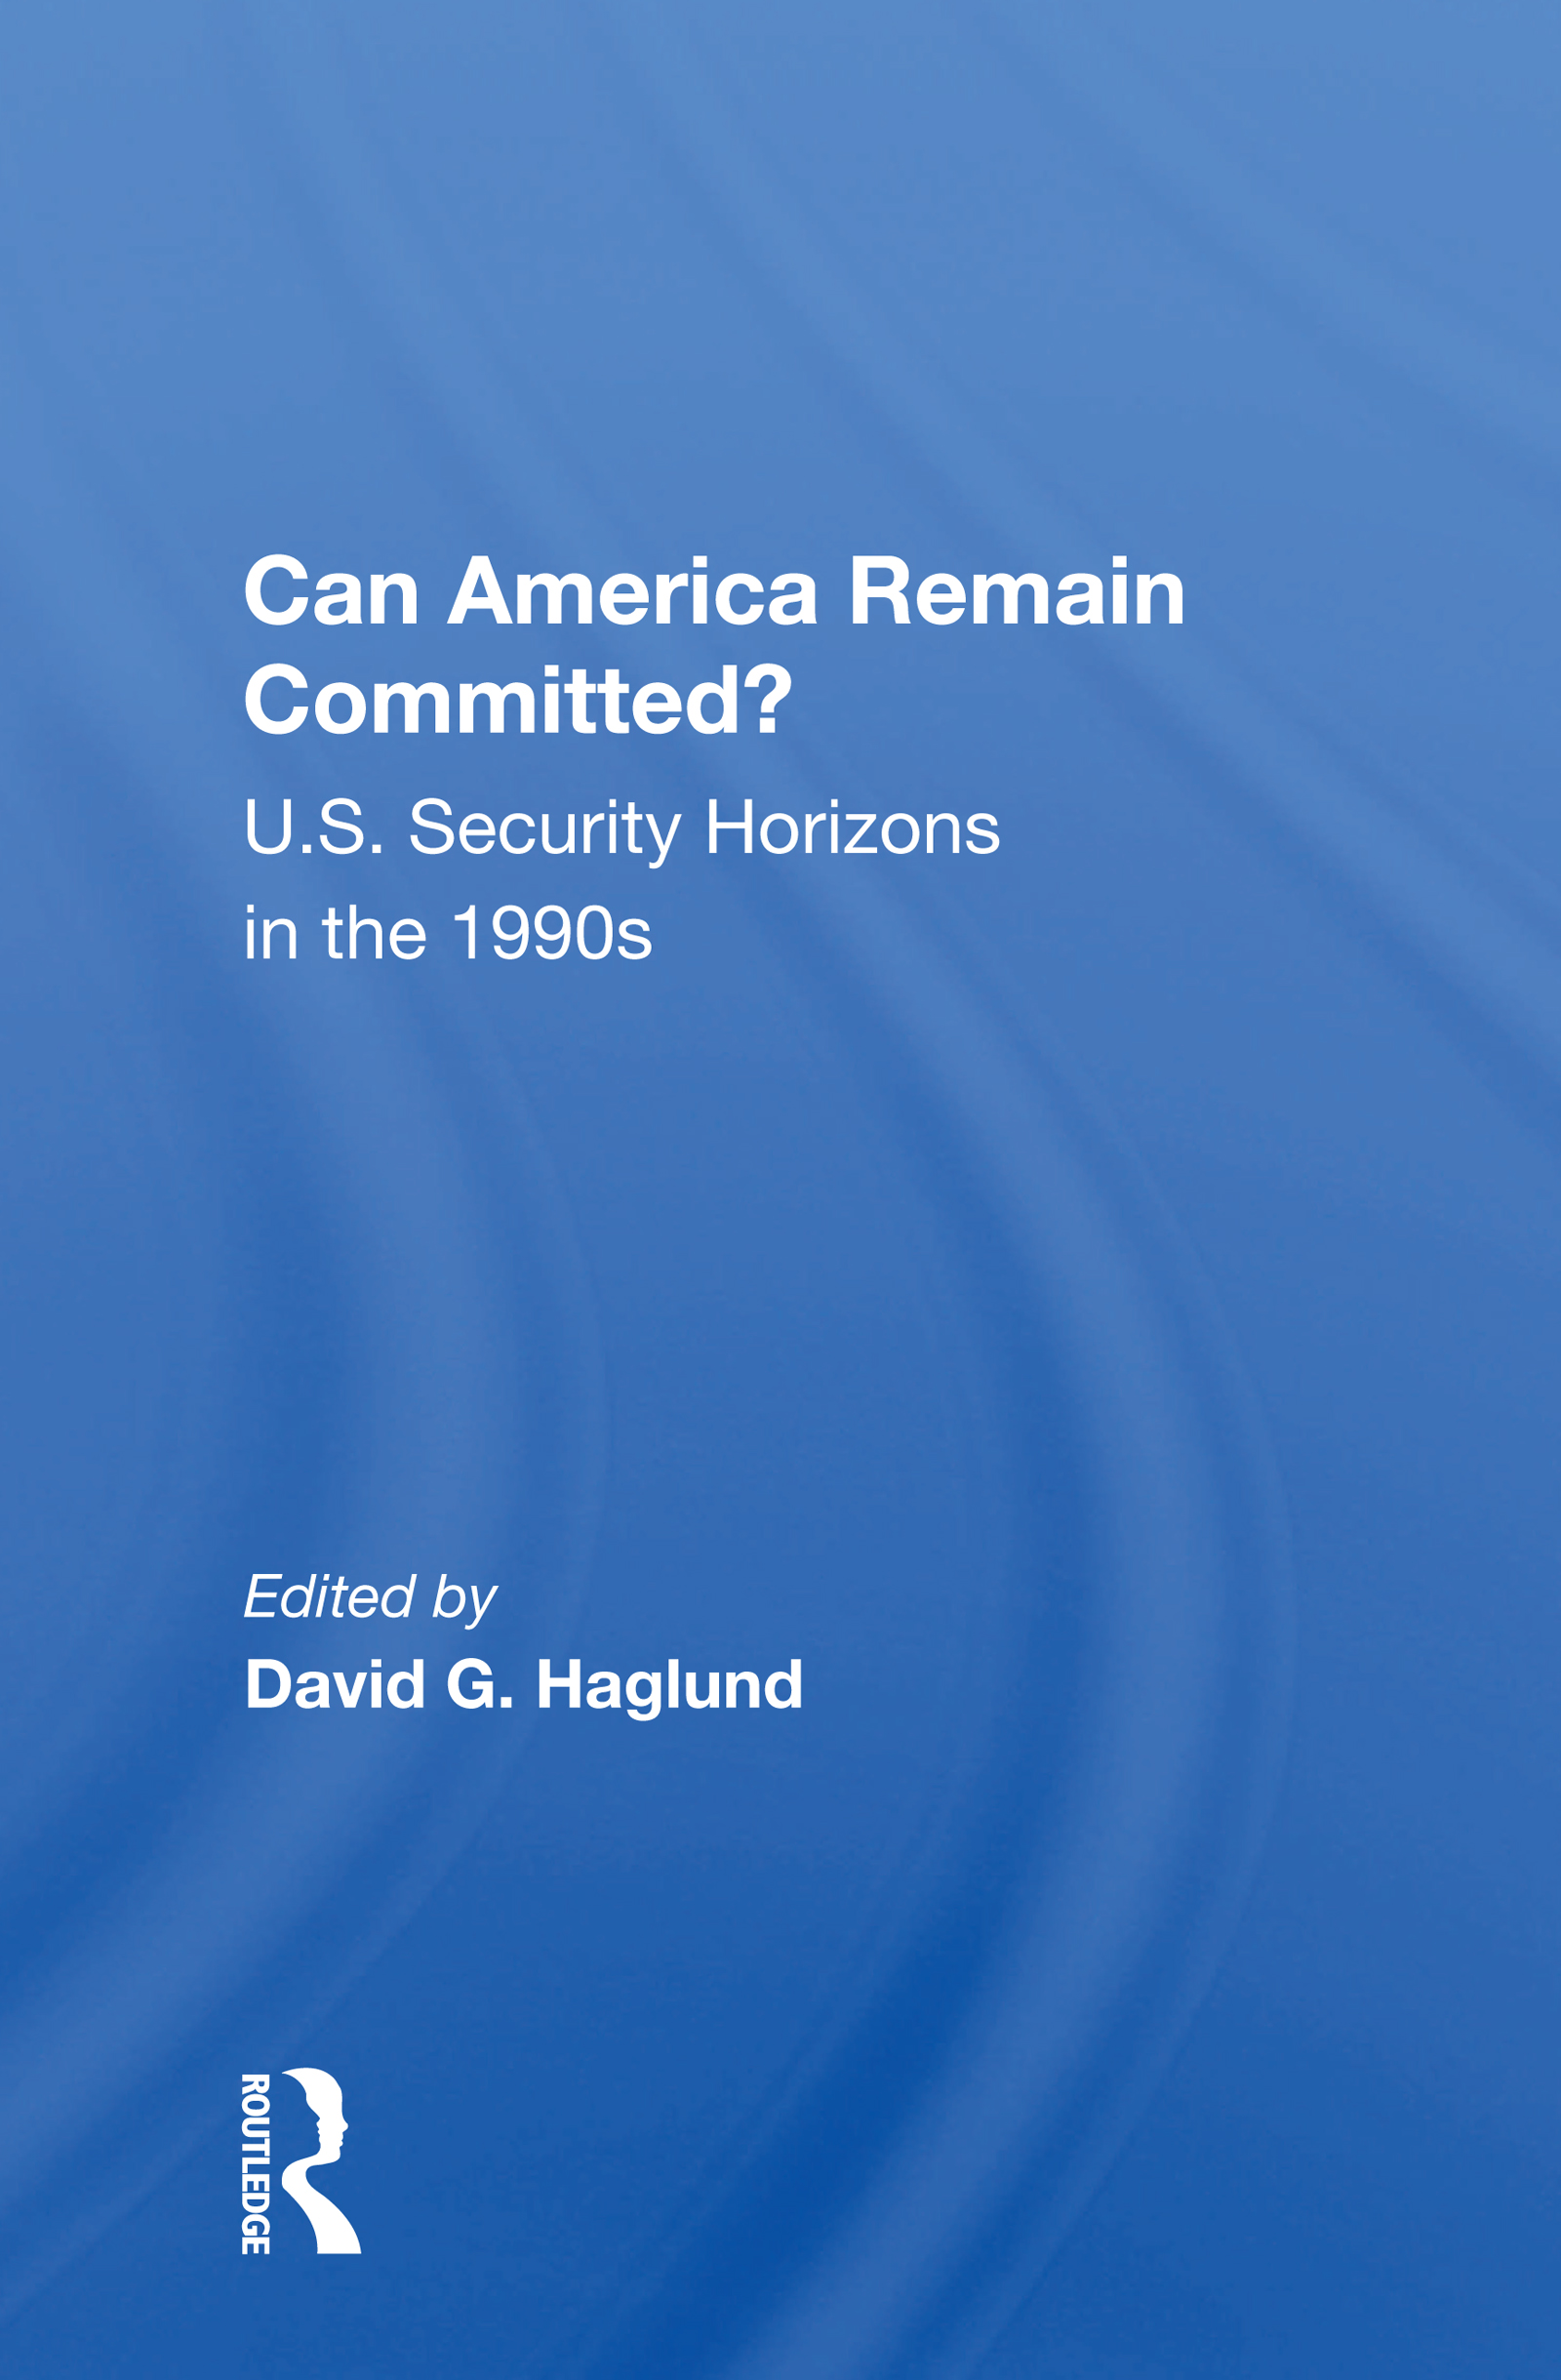 Can America Remain Committed?